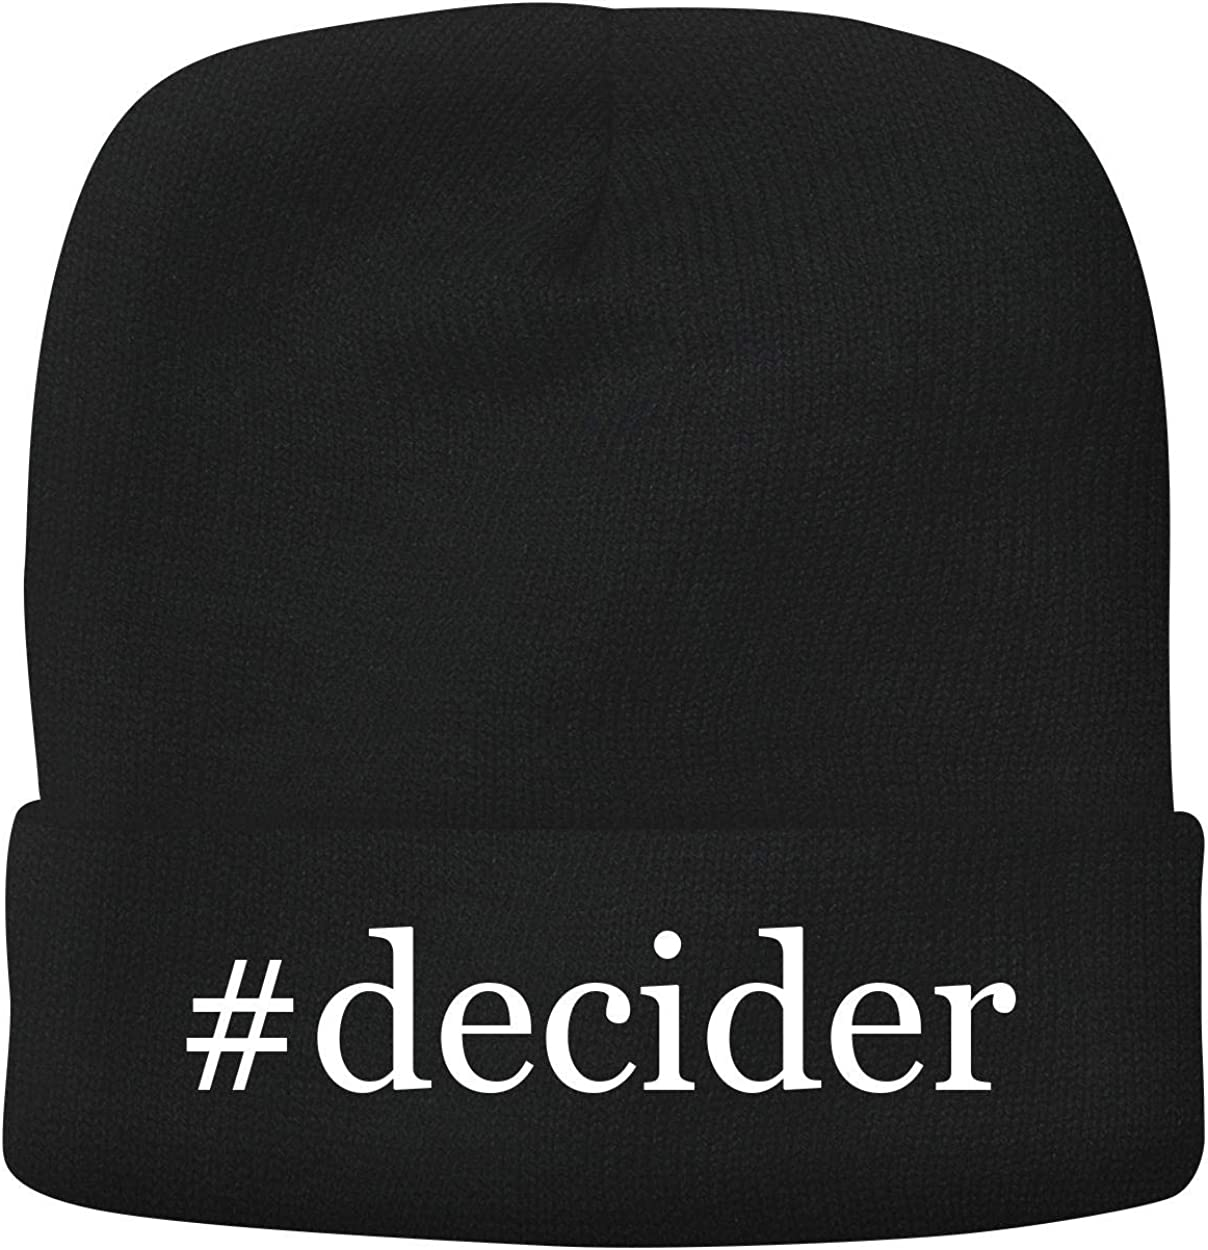 BH Cool Designs #Decider - Adult Hashtag Comfortable Fleece Lined Beanie